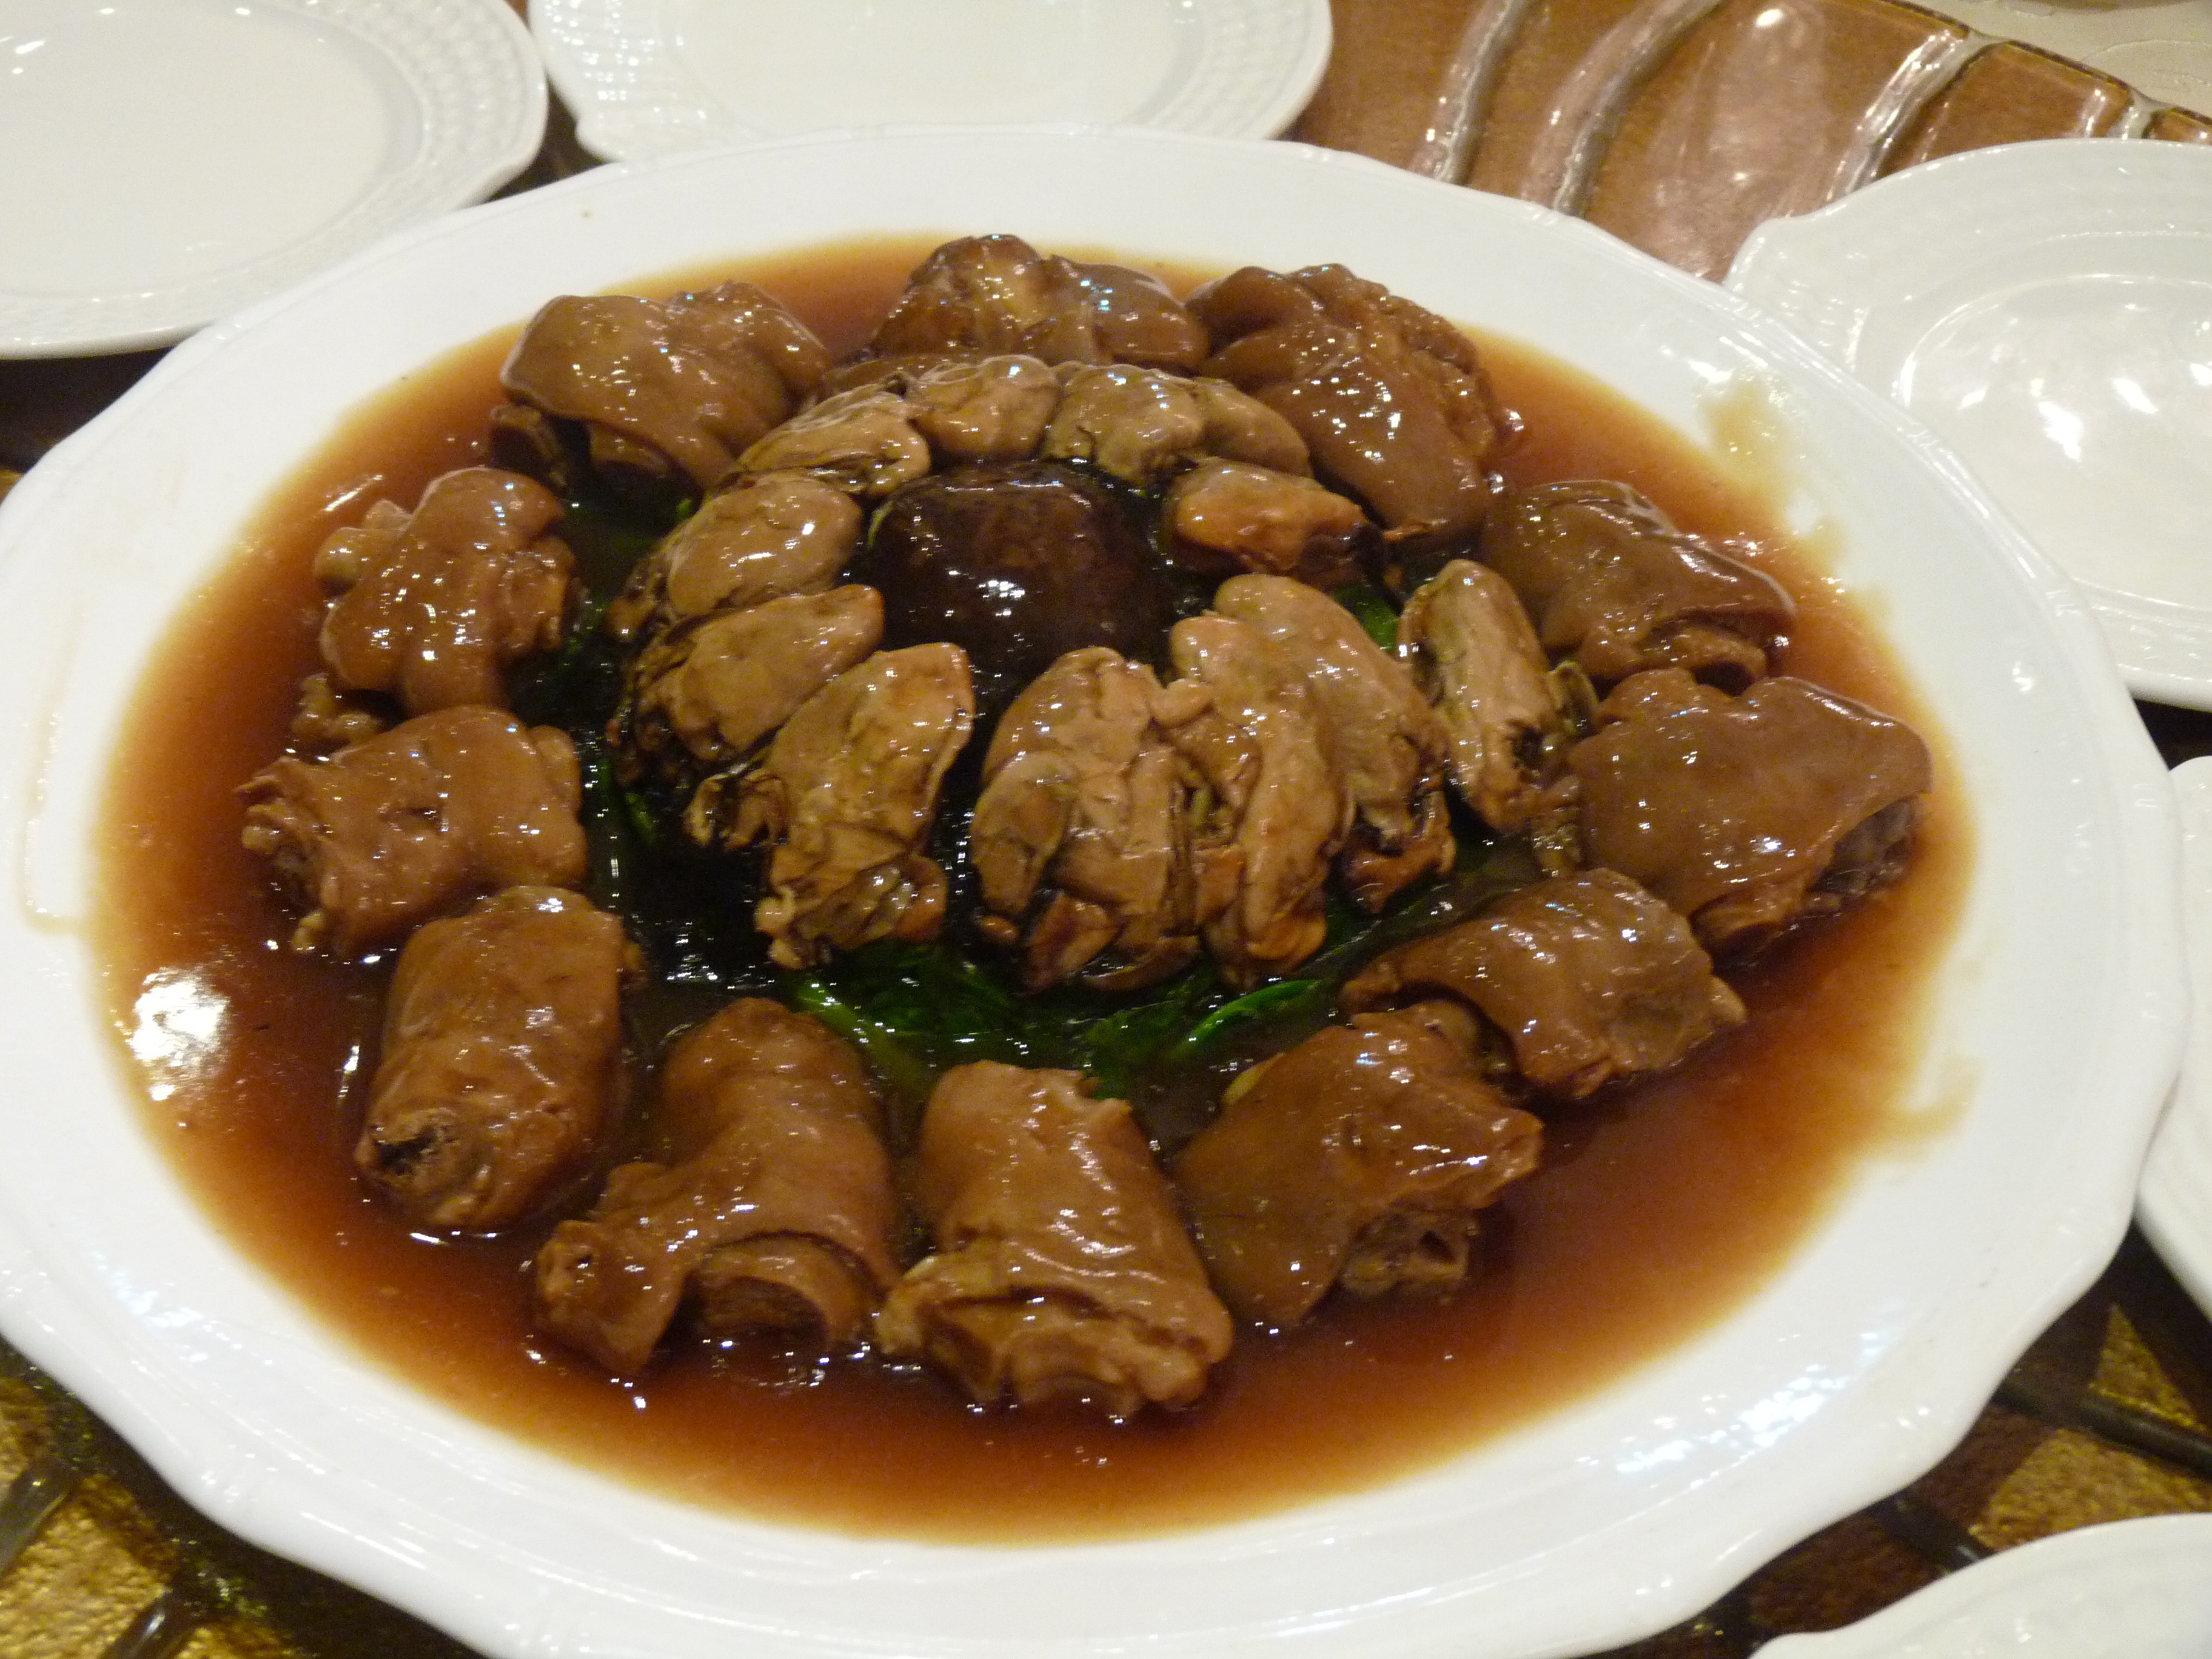 Braised Dried Oyster and Pork Hock